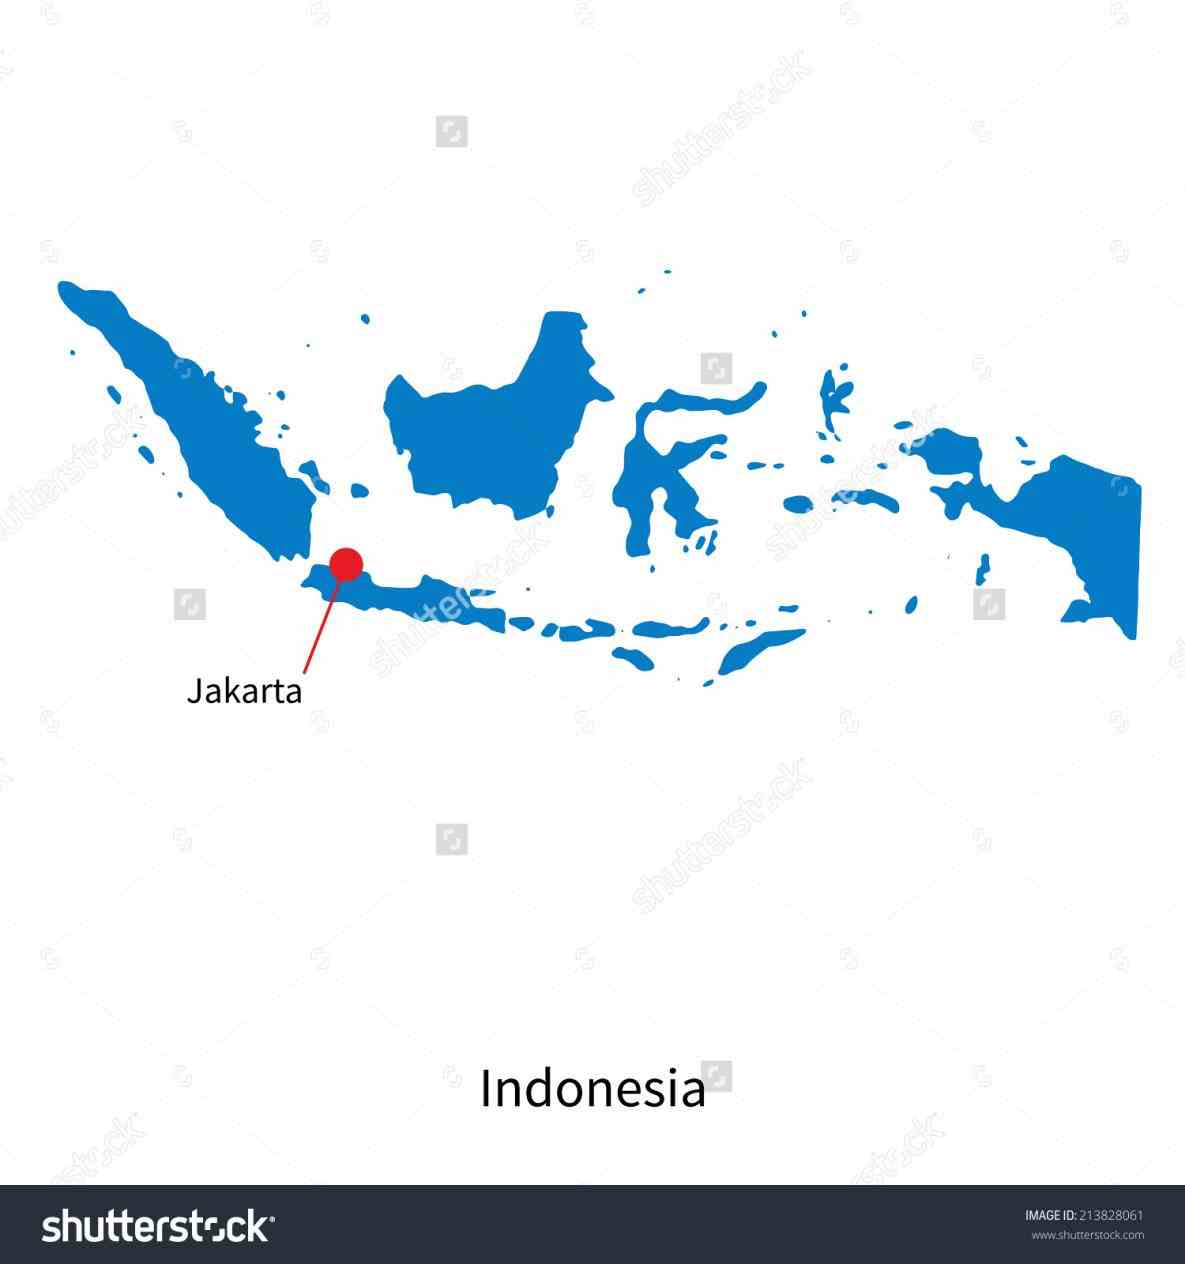 Indonesia svg #3, Download drawings